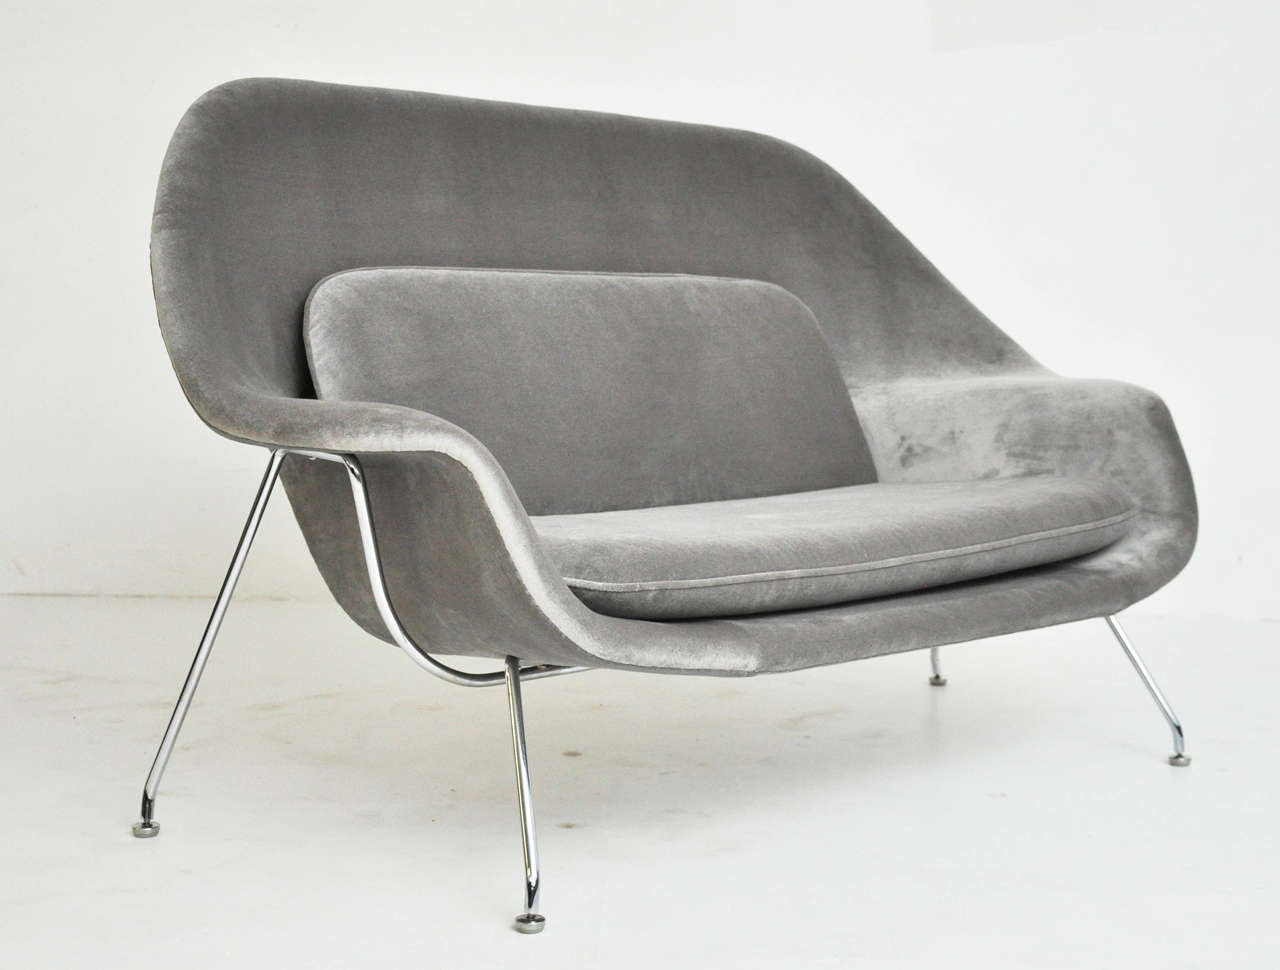 Womb Settee Sofa Designed By Eero Saarinen For Knoll Circa 1960 Fully Red And